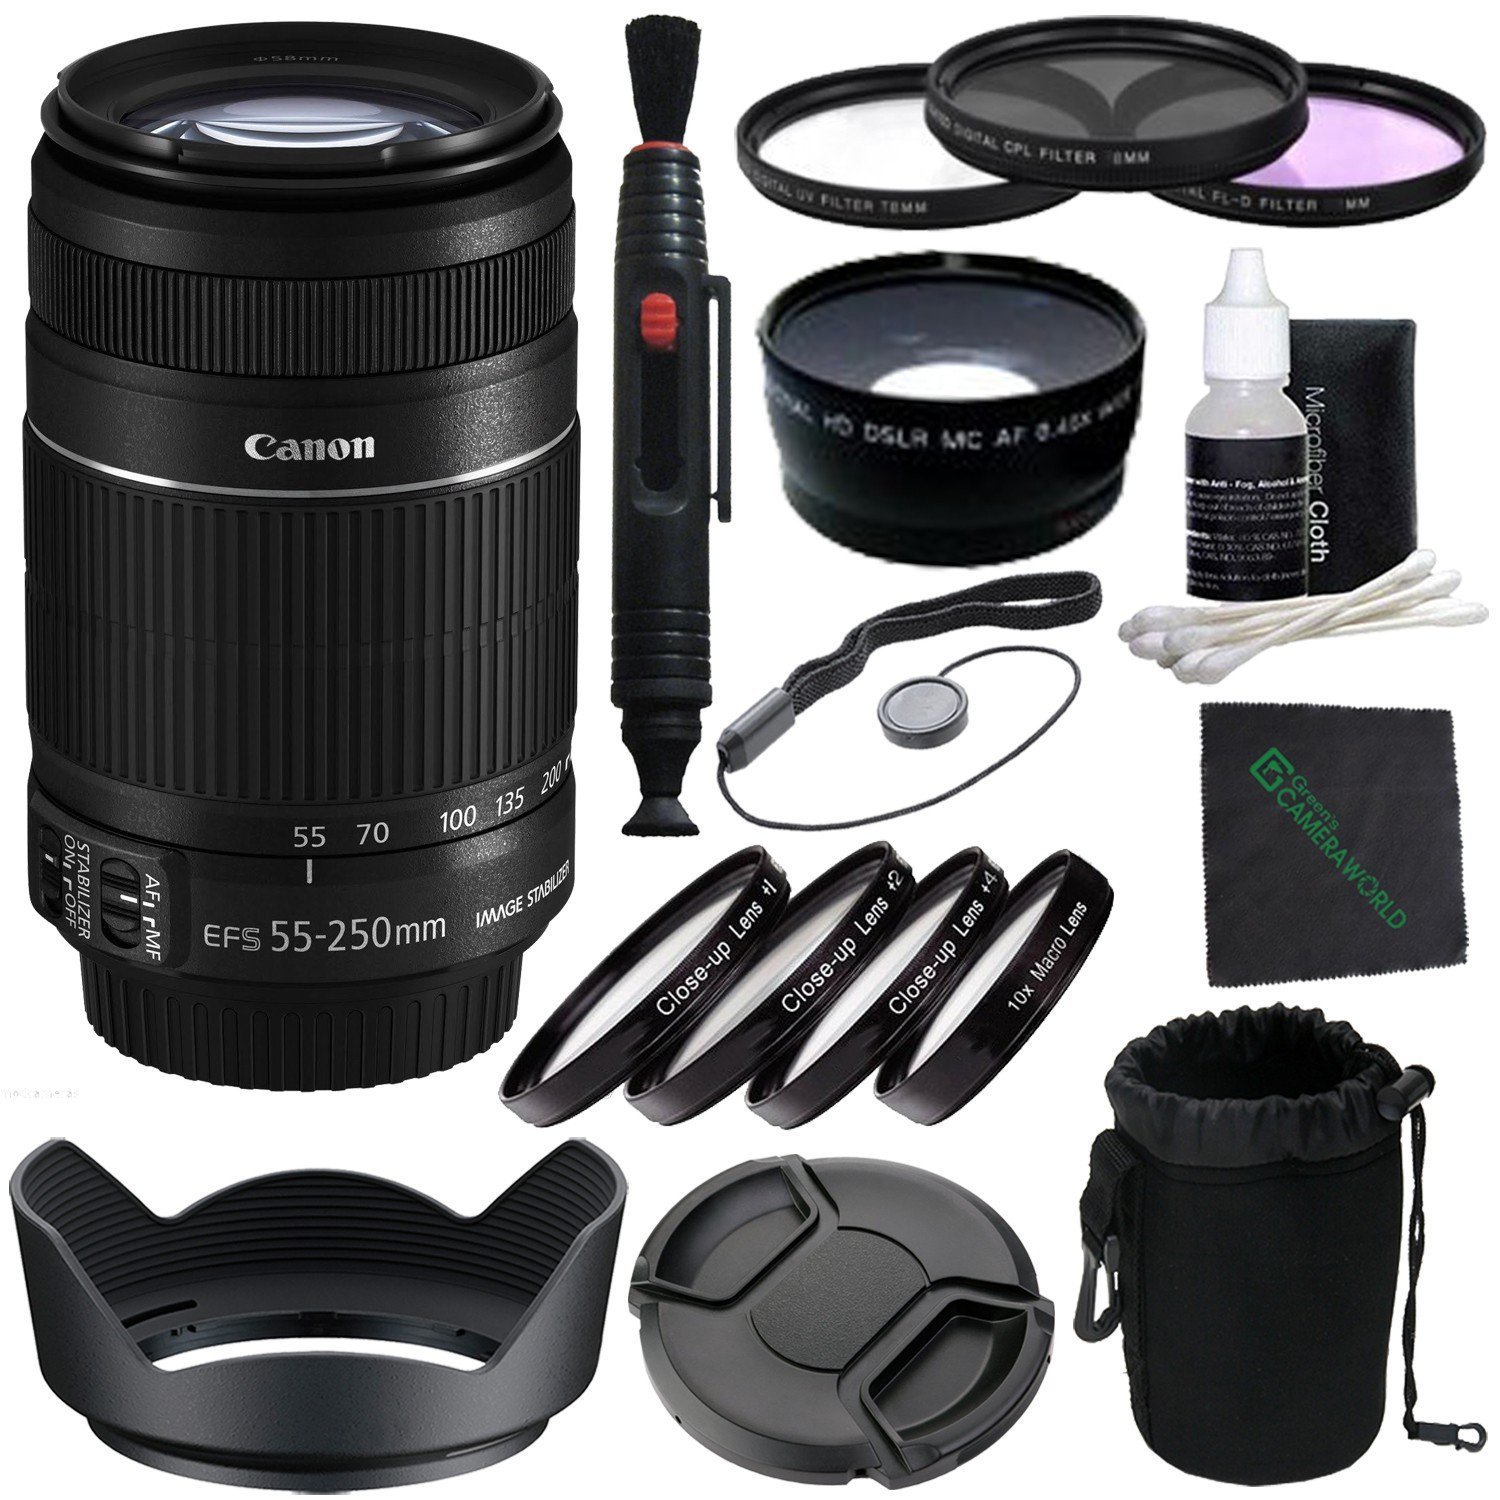 Telephoto /& Wide Angle Lens International Version 58mm UV Filter 32GB Memory Card Tulip Lens Hood Wallet Canon EF-S 55-250mm f//4-5.6 is STM Lens